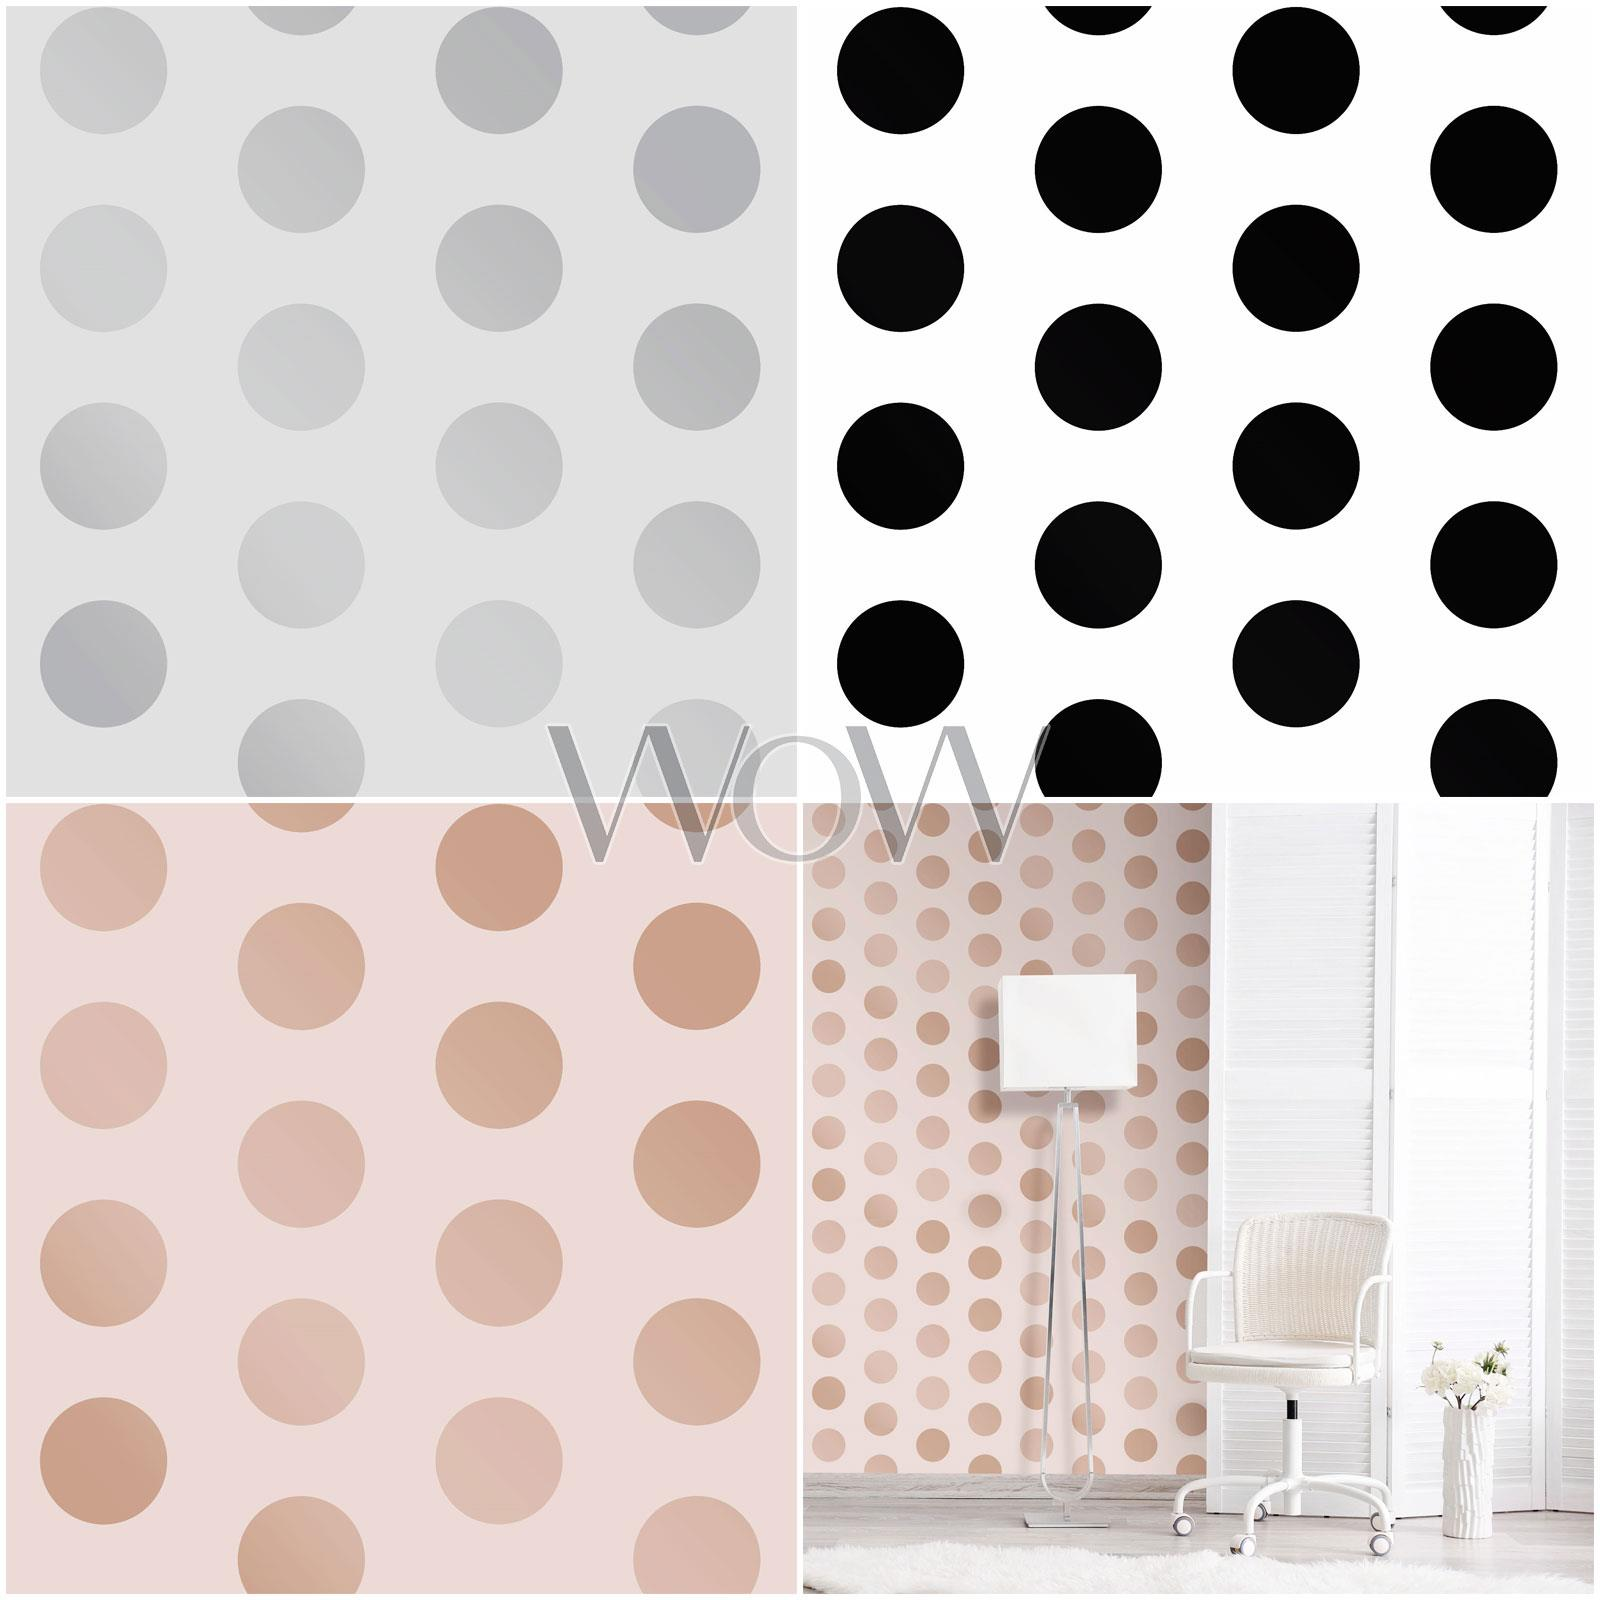 Details About Big Dots Polka Dot Wallpaper Rose Gold Grey Black White Metallic Or Matte